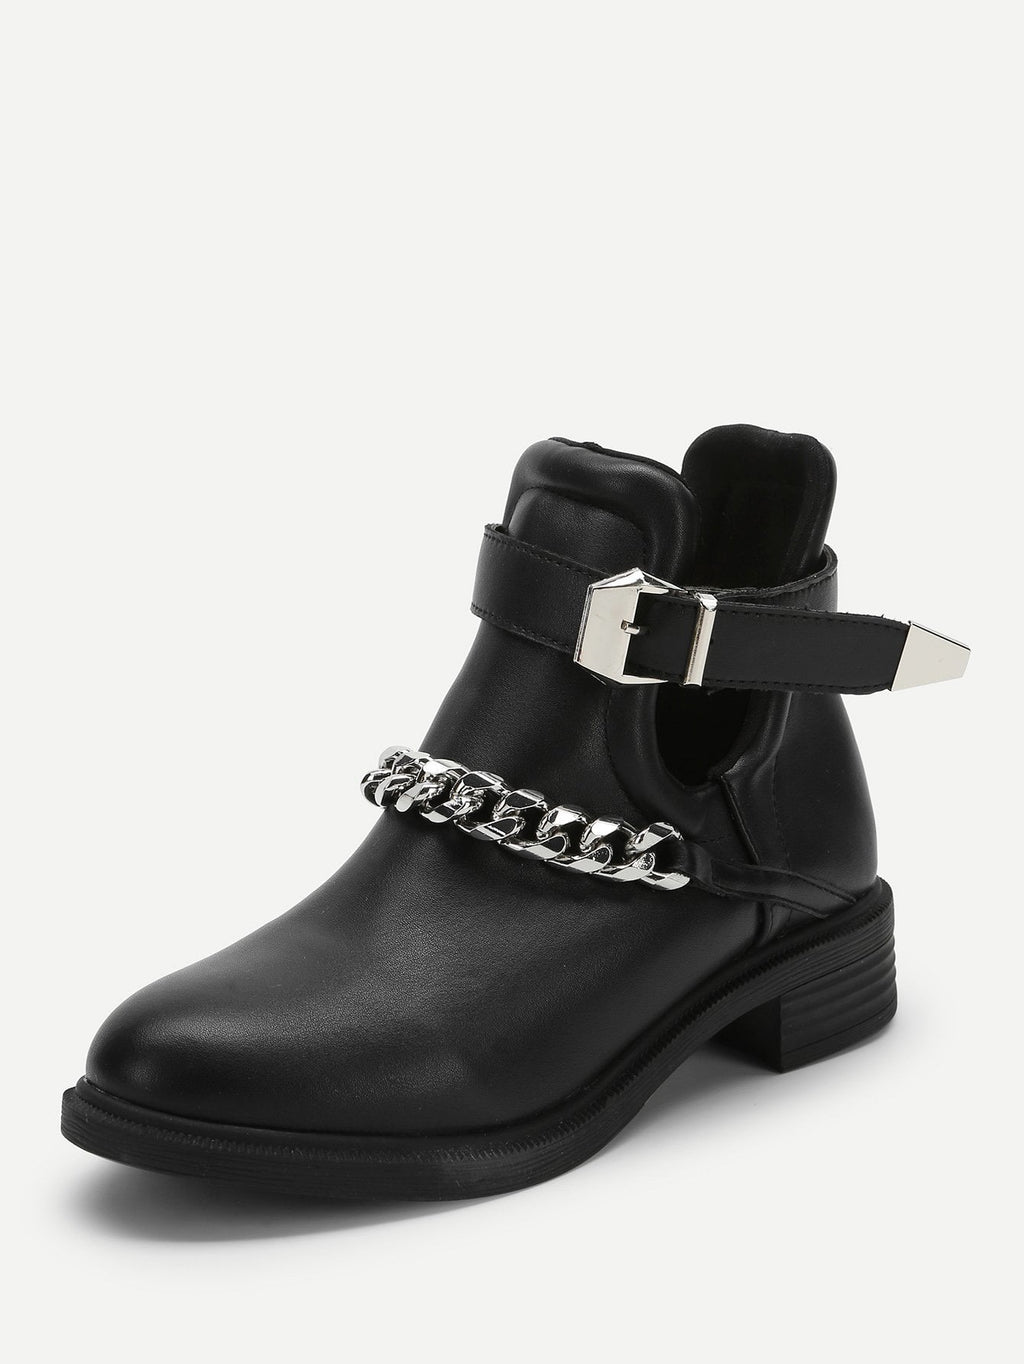 Kette Decor Anckle Stiefel